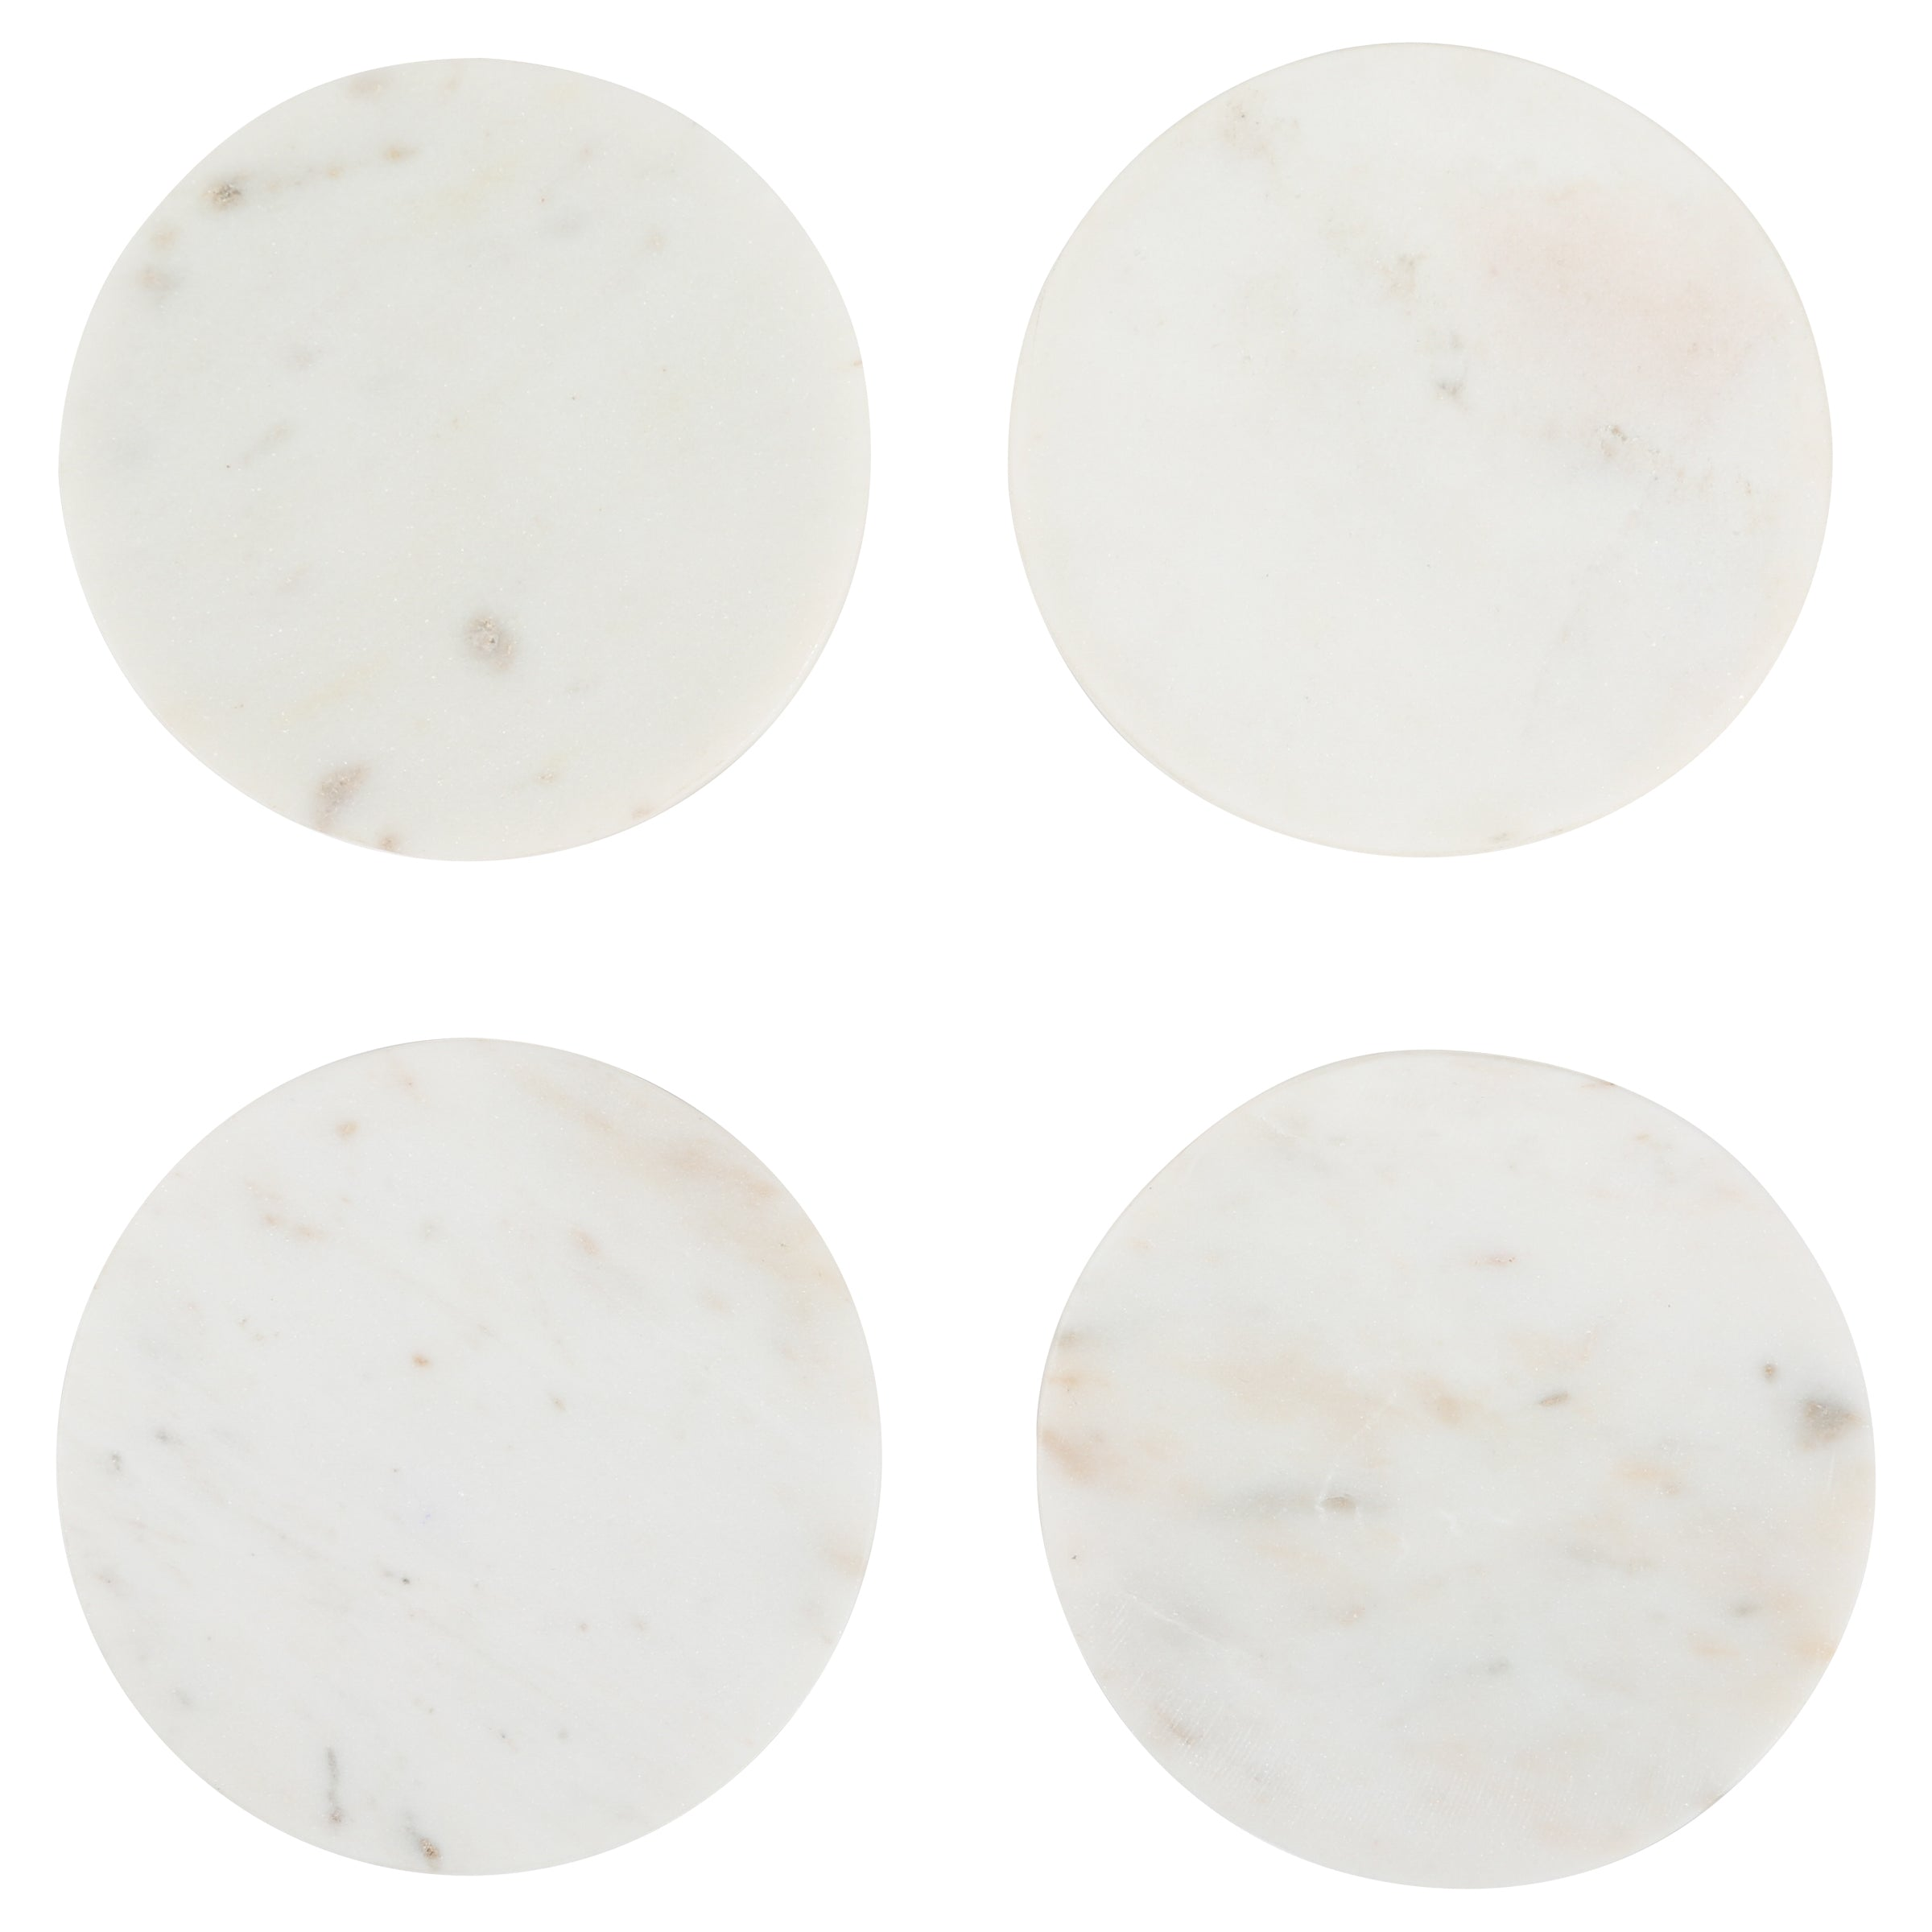 Set of 4 Marble Coasters in White design by Sir/Madam